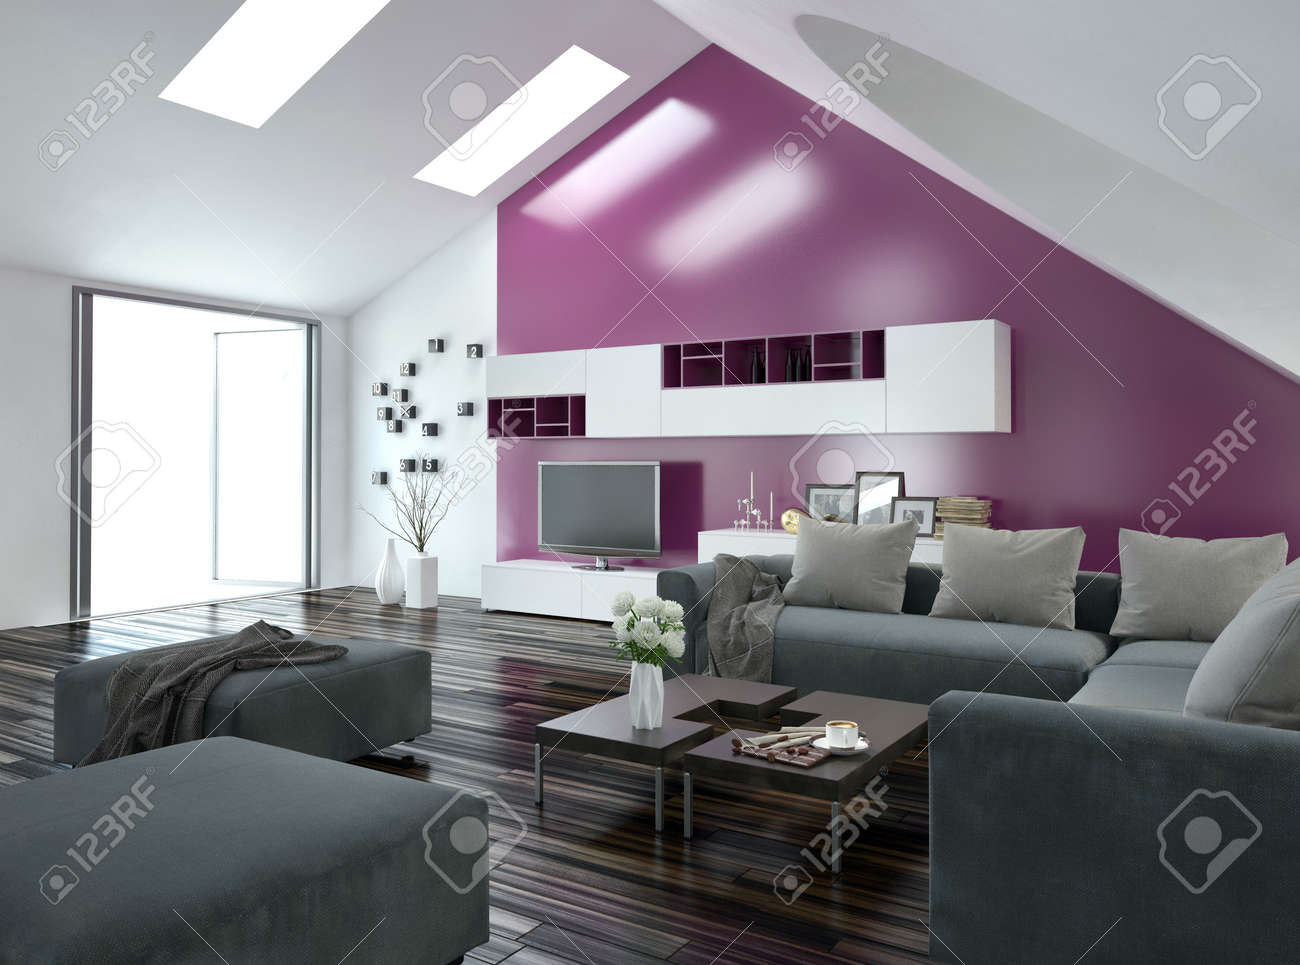 Modern apartment living room interior with a purple accent wall